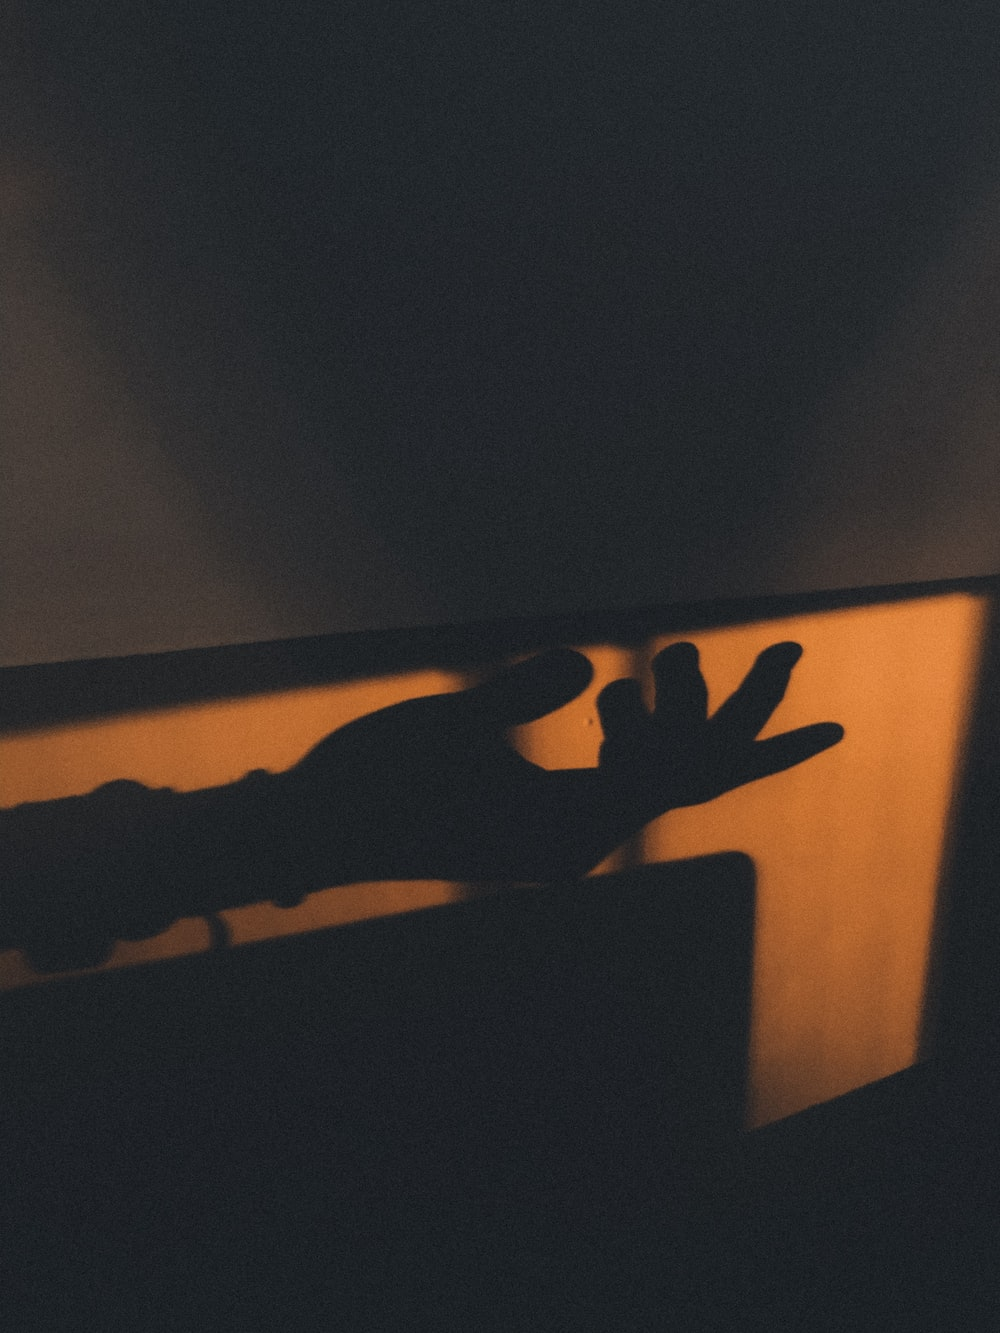 silhouette of right palm